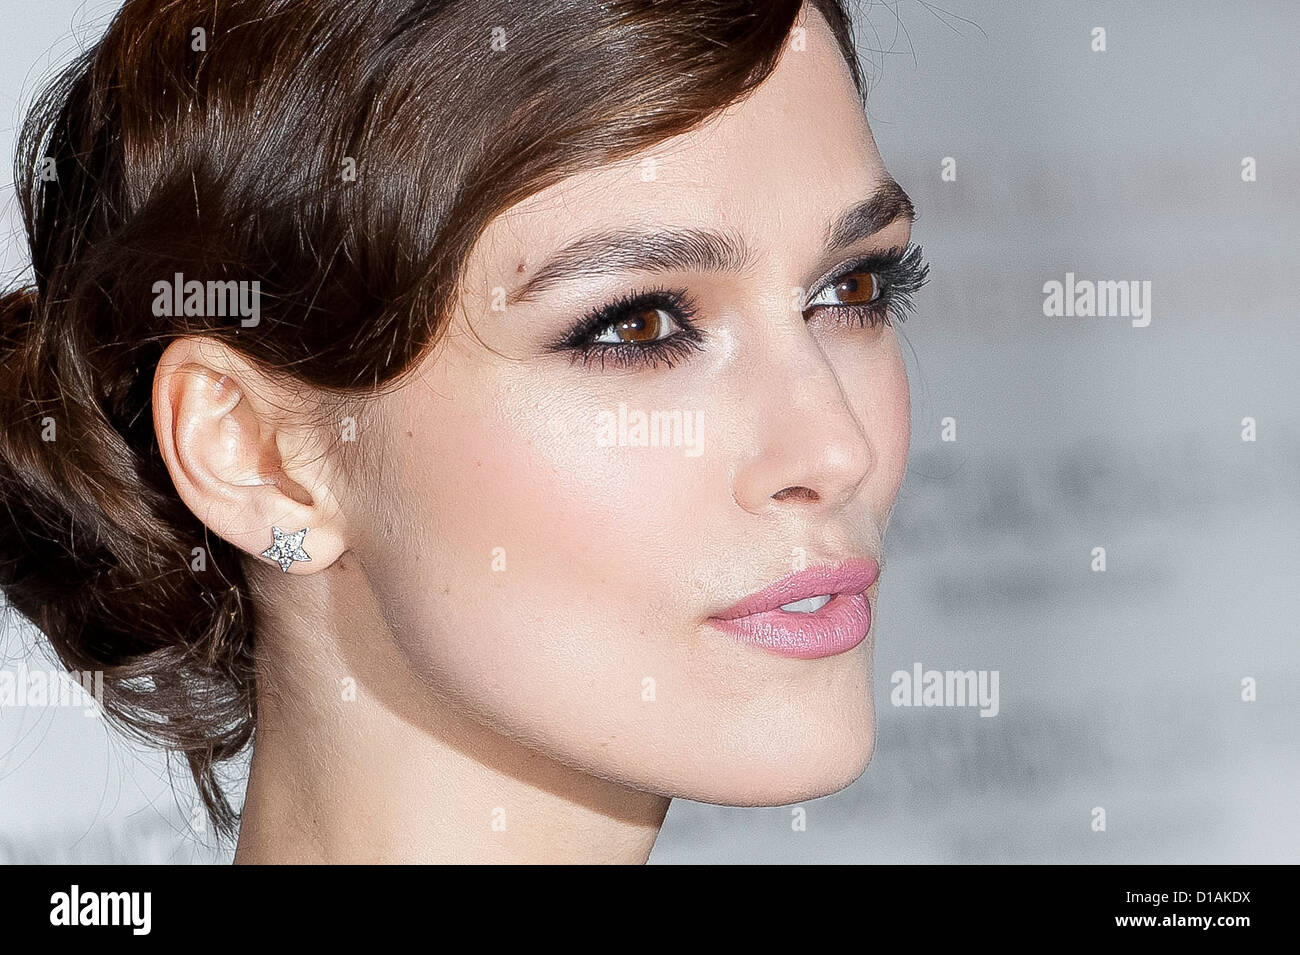 British actress, Keira Knightley, arrives for the gala screening of A Dangerous Method. - Stock Image